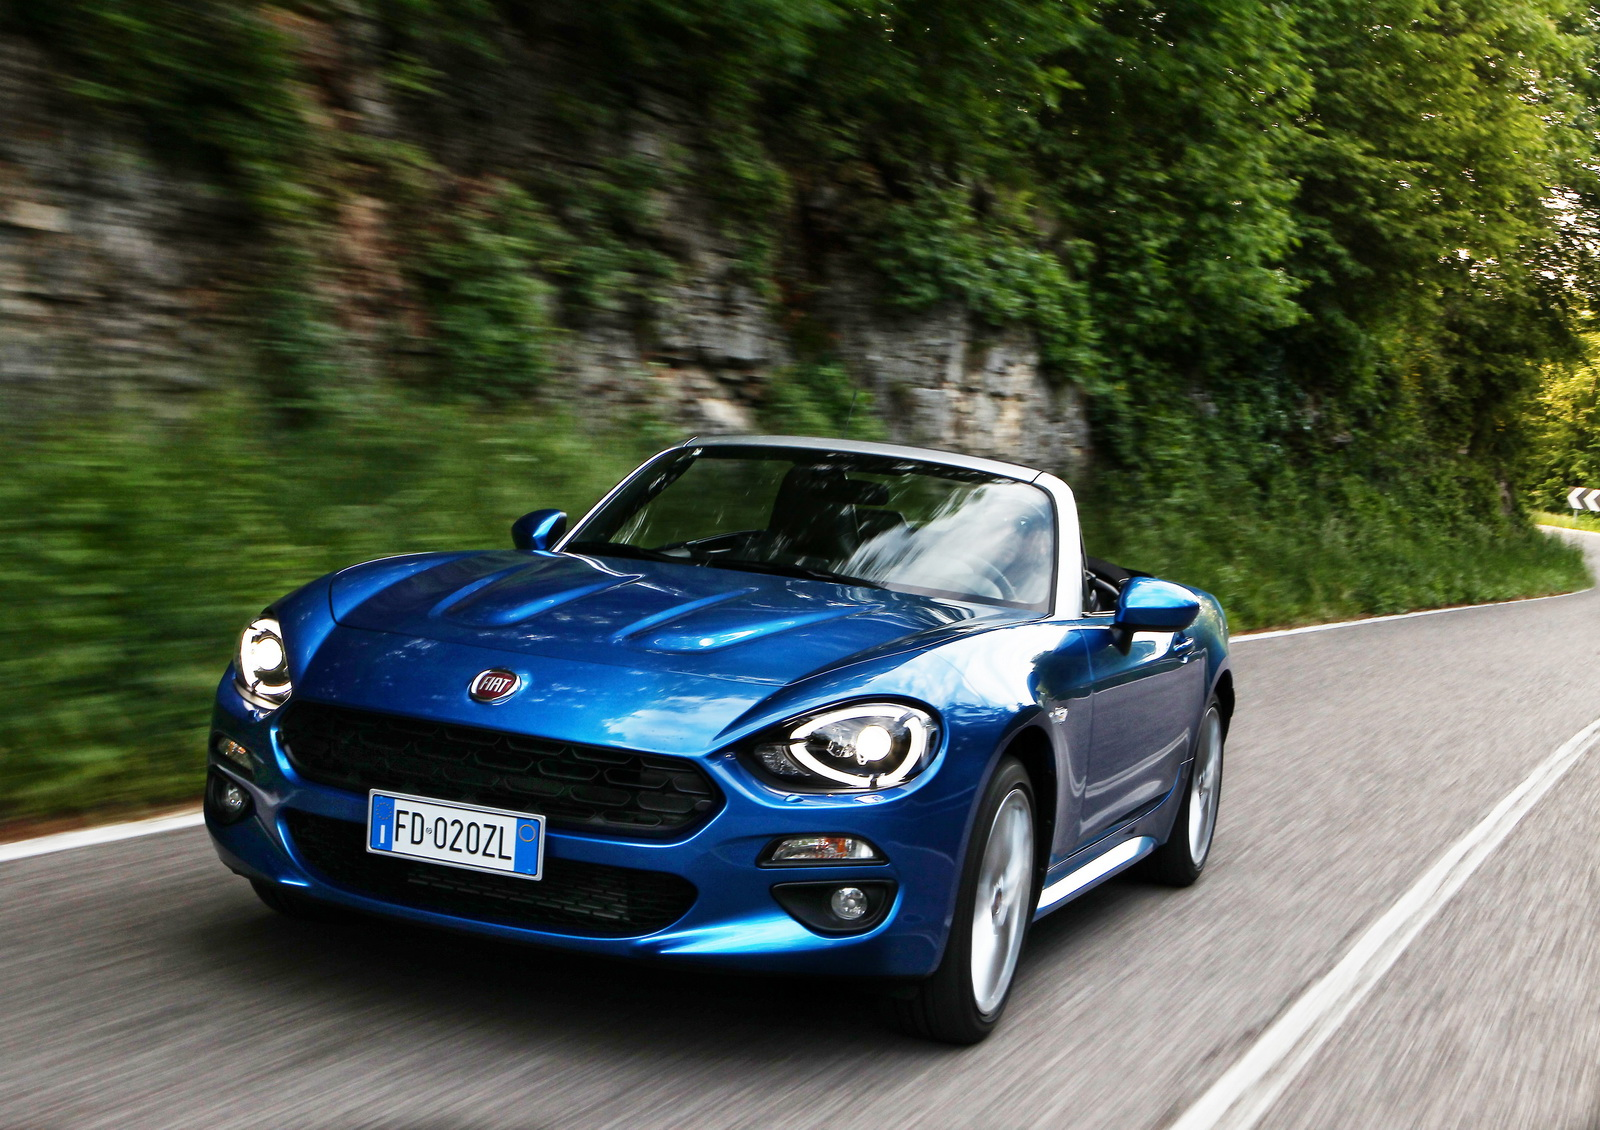 New fiat 124 spider officially launched in europe 60 for Fiat 124 spider motor